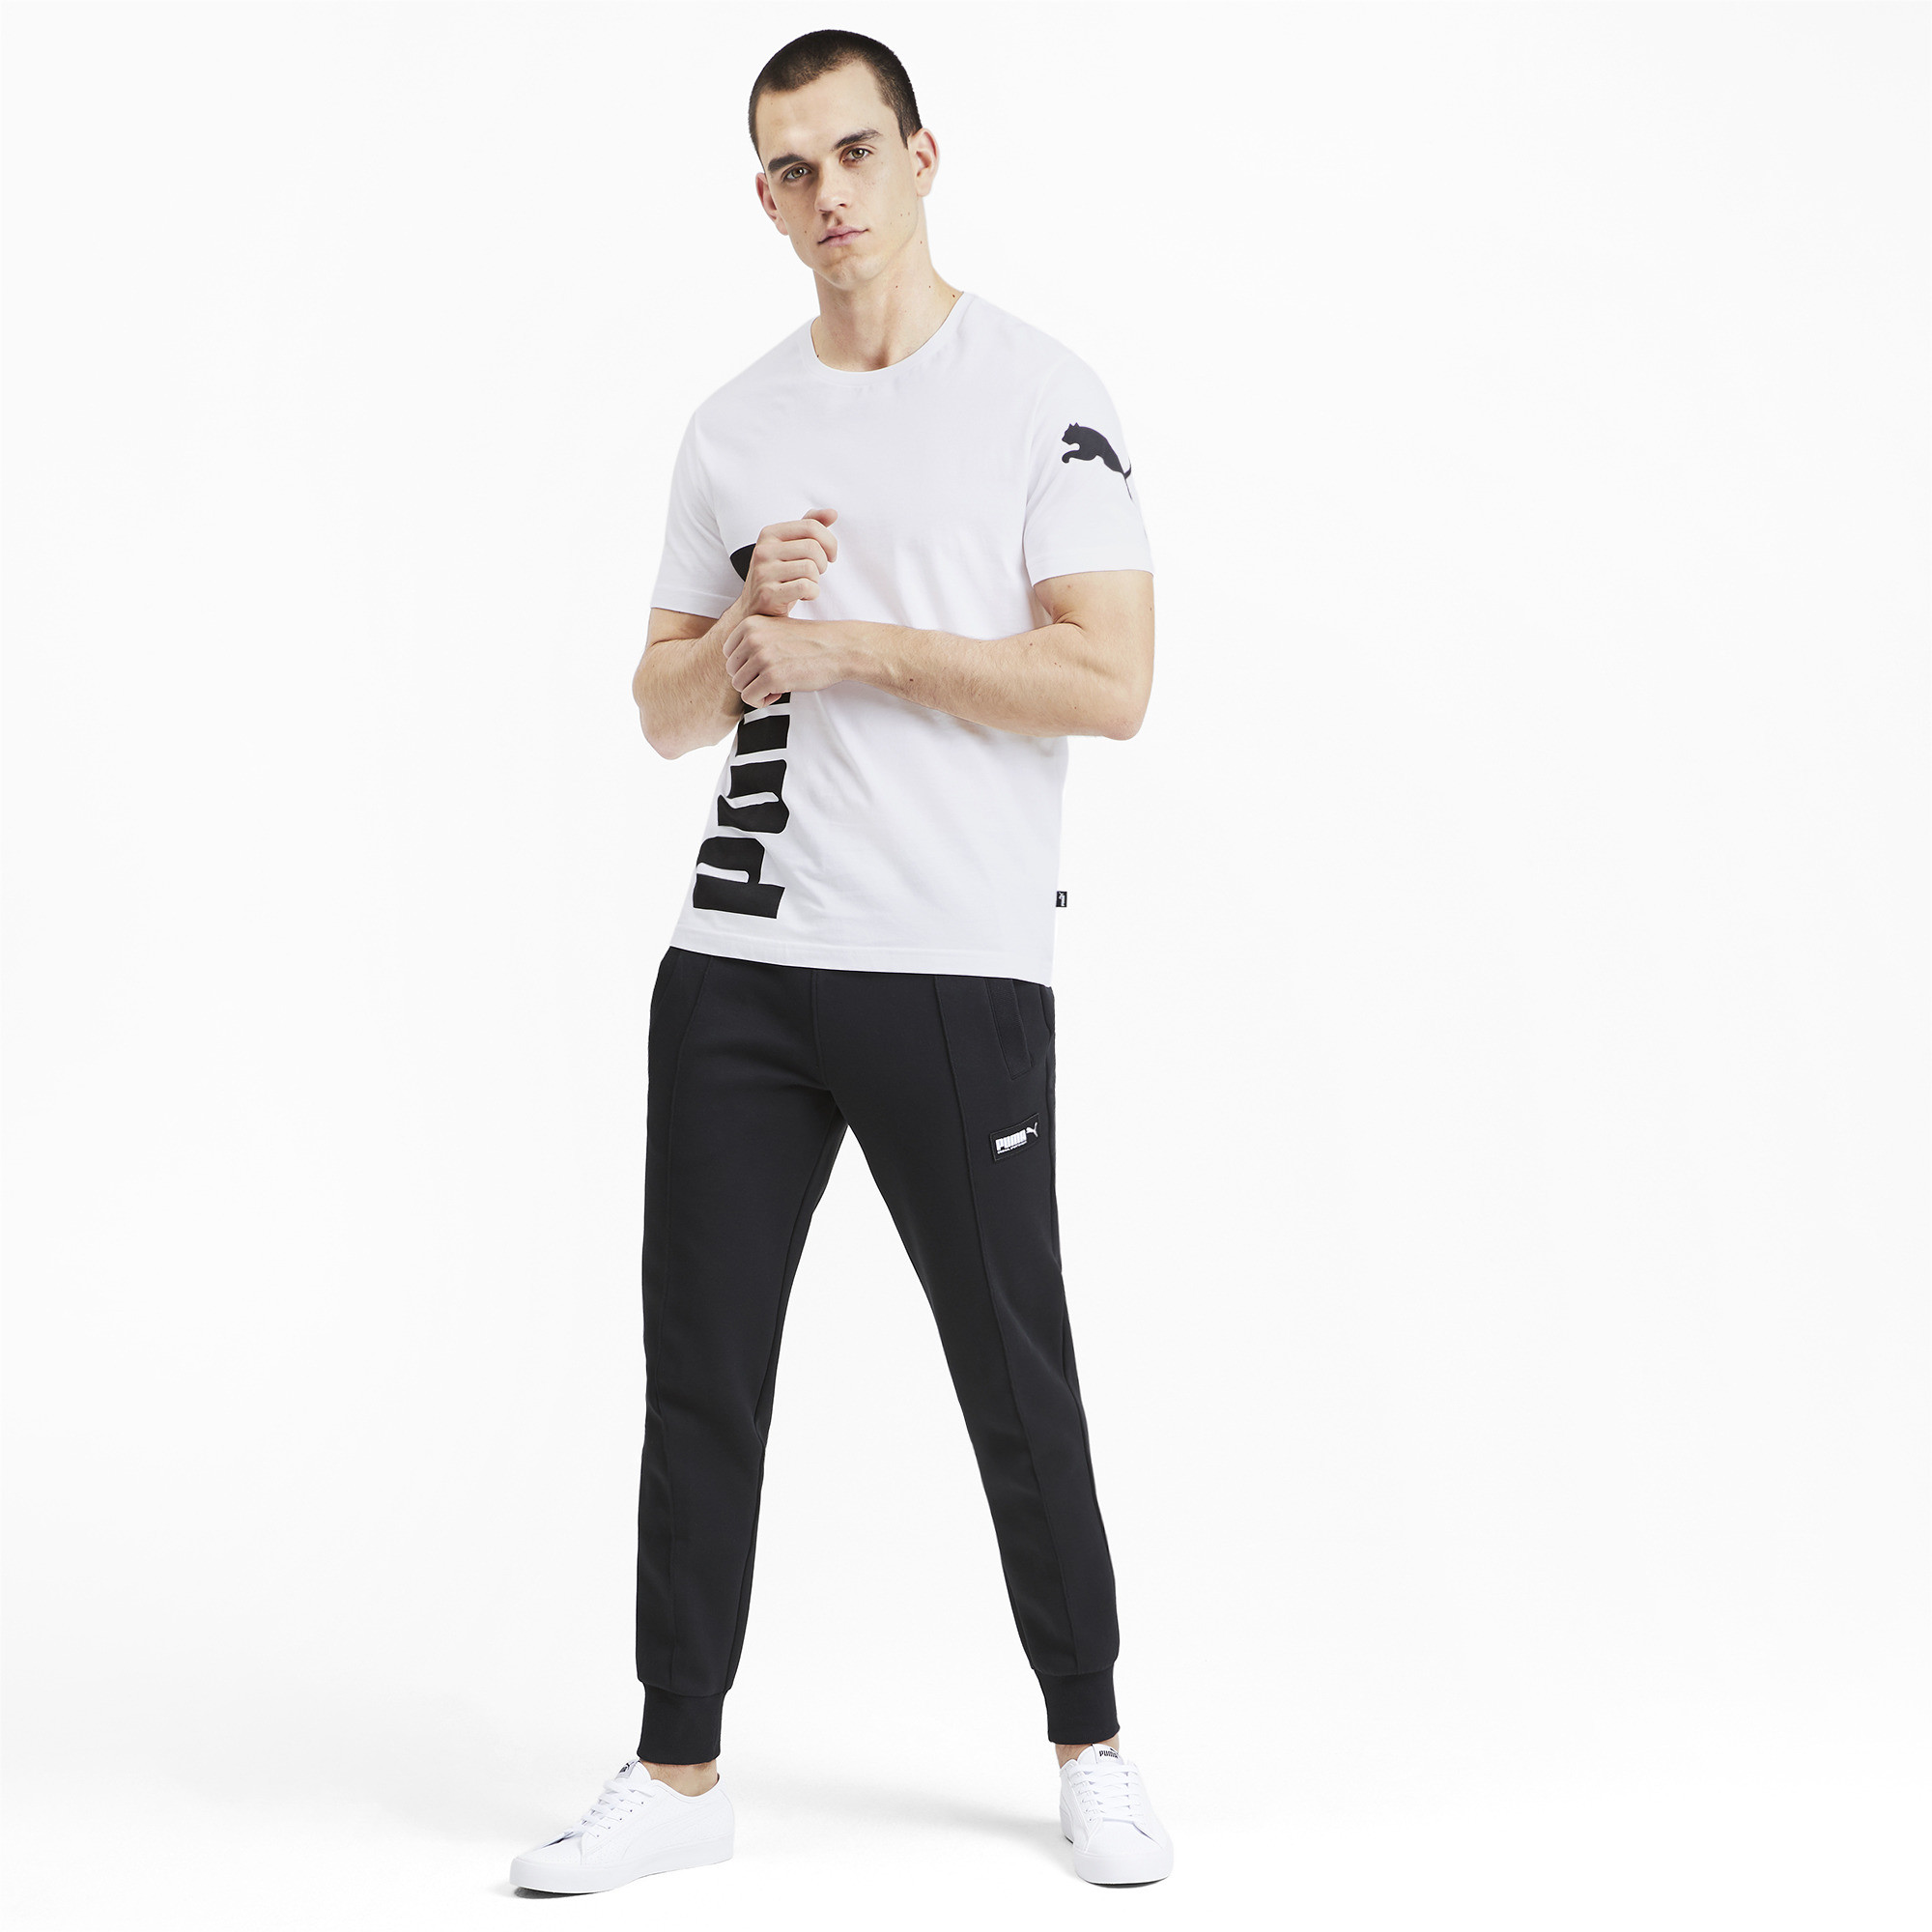 PUMA-Big-Logo-Men-039-s-Tee-Men-Tee-Basics thumbnail 35